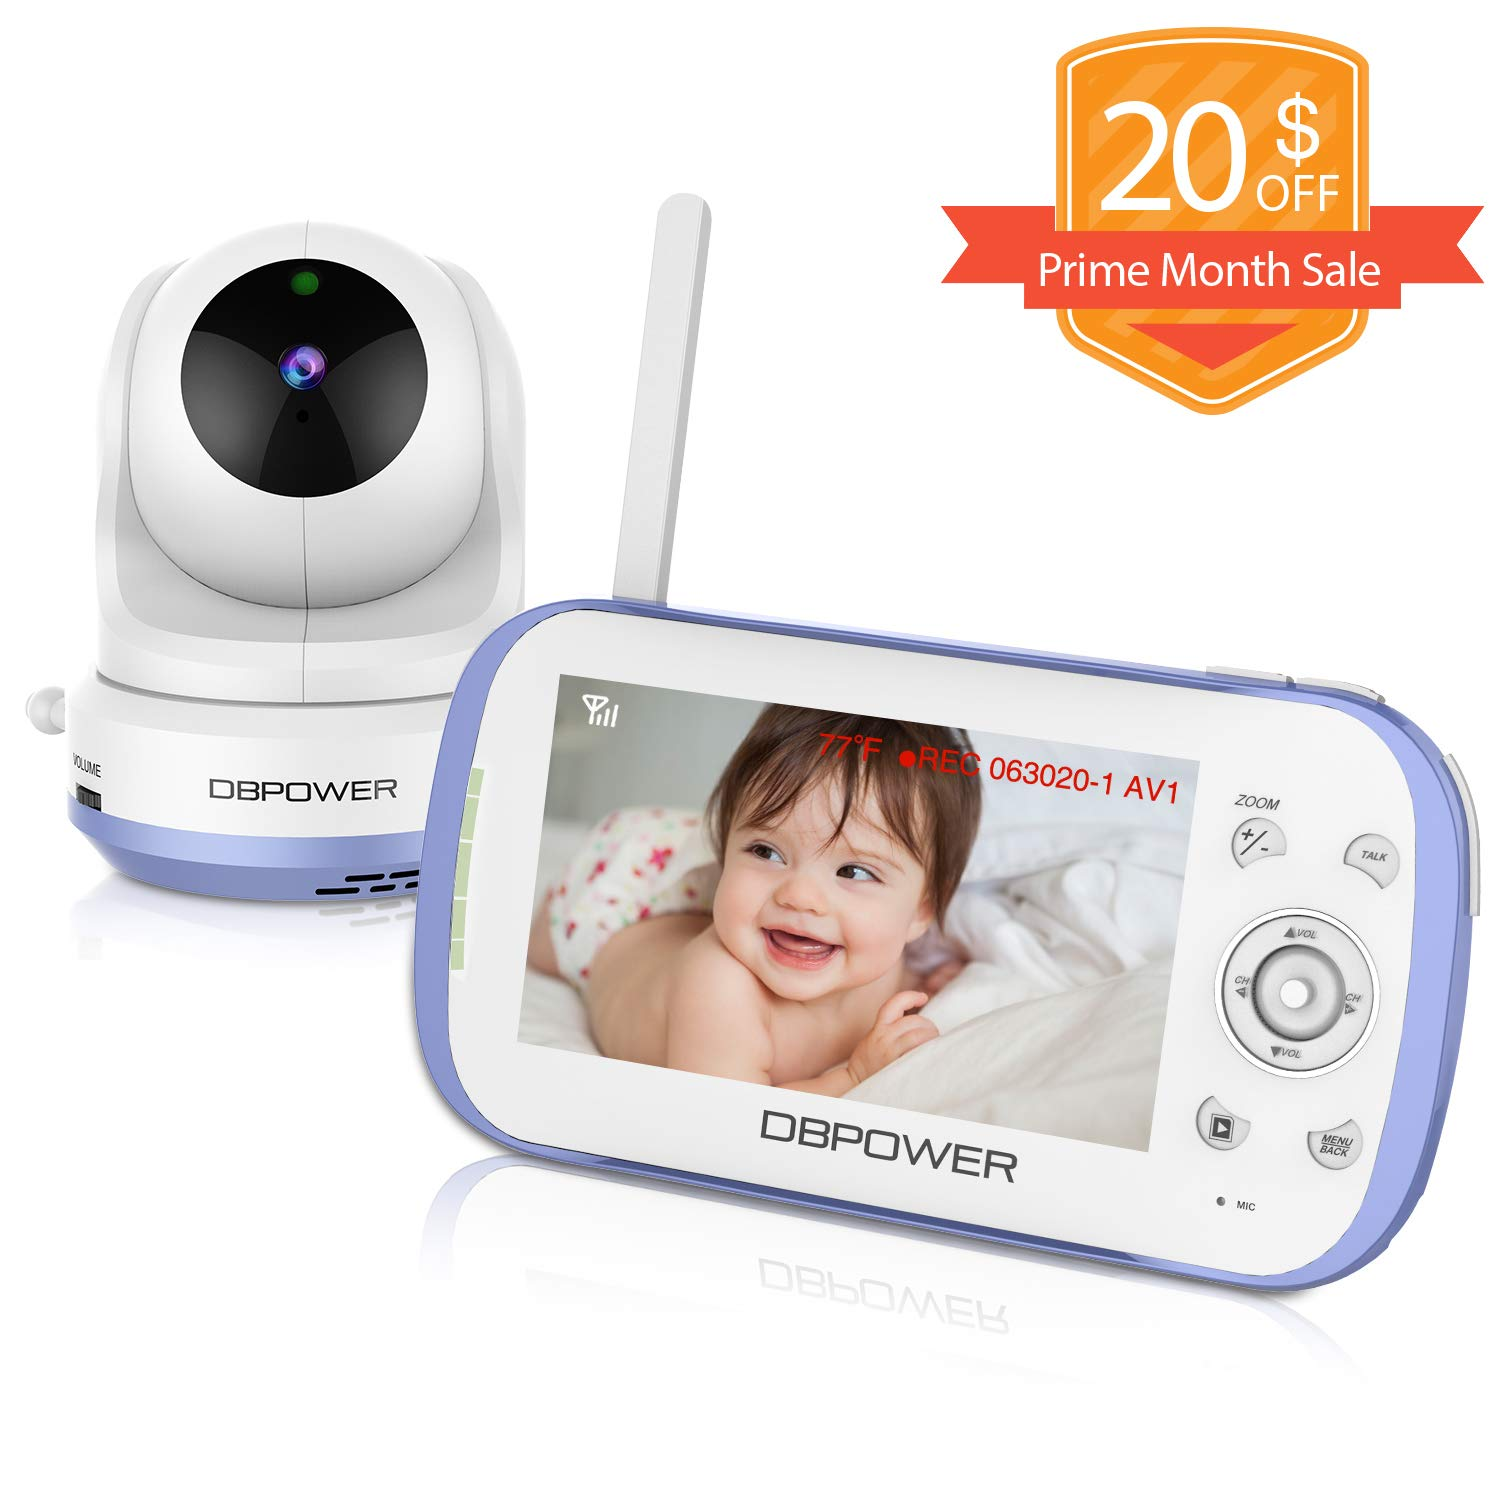 DBPOWER Video Baby Monitor with 4.3'' LCD Split Screen-Viewing Up to 4 Cameras, Long Range Two Way Talk, Night Vision, Support MicroSD Card(not Included), Pan-Tilt-Zoom, Lullabies, Temperature Monitor